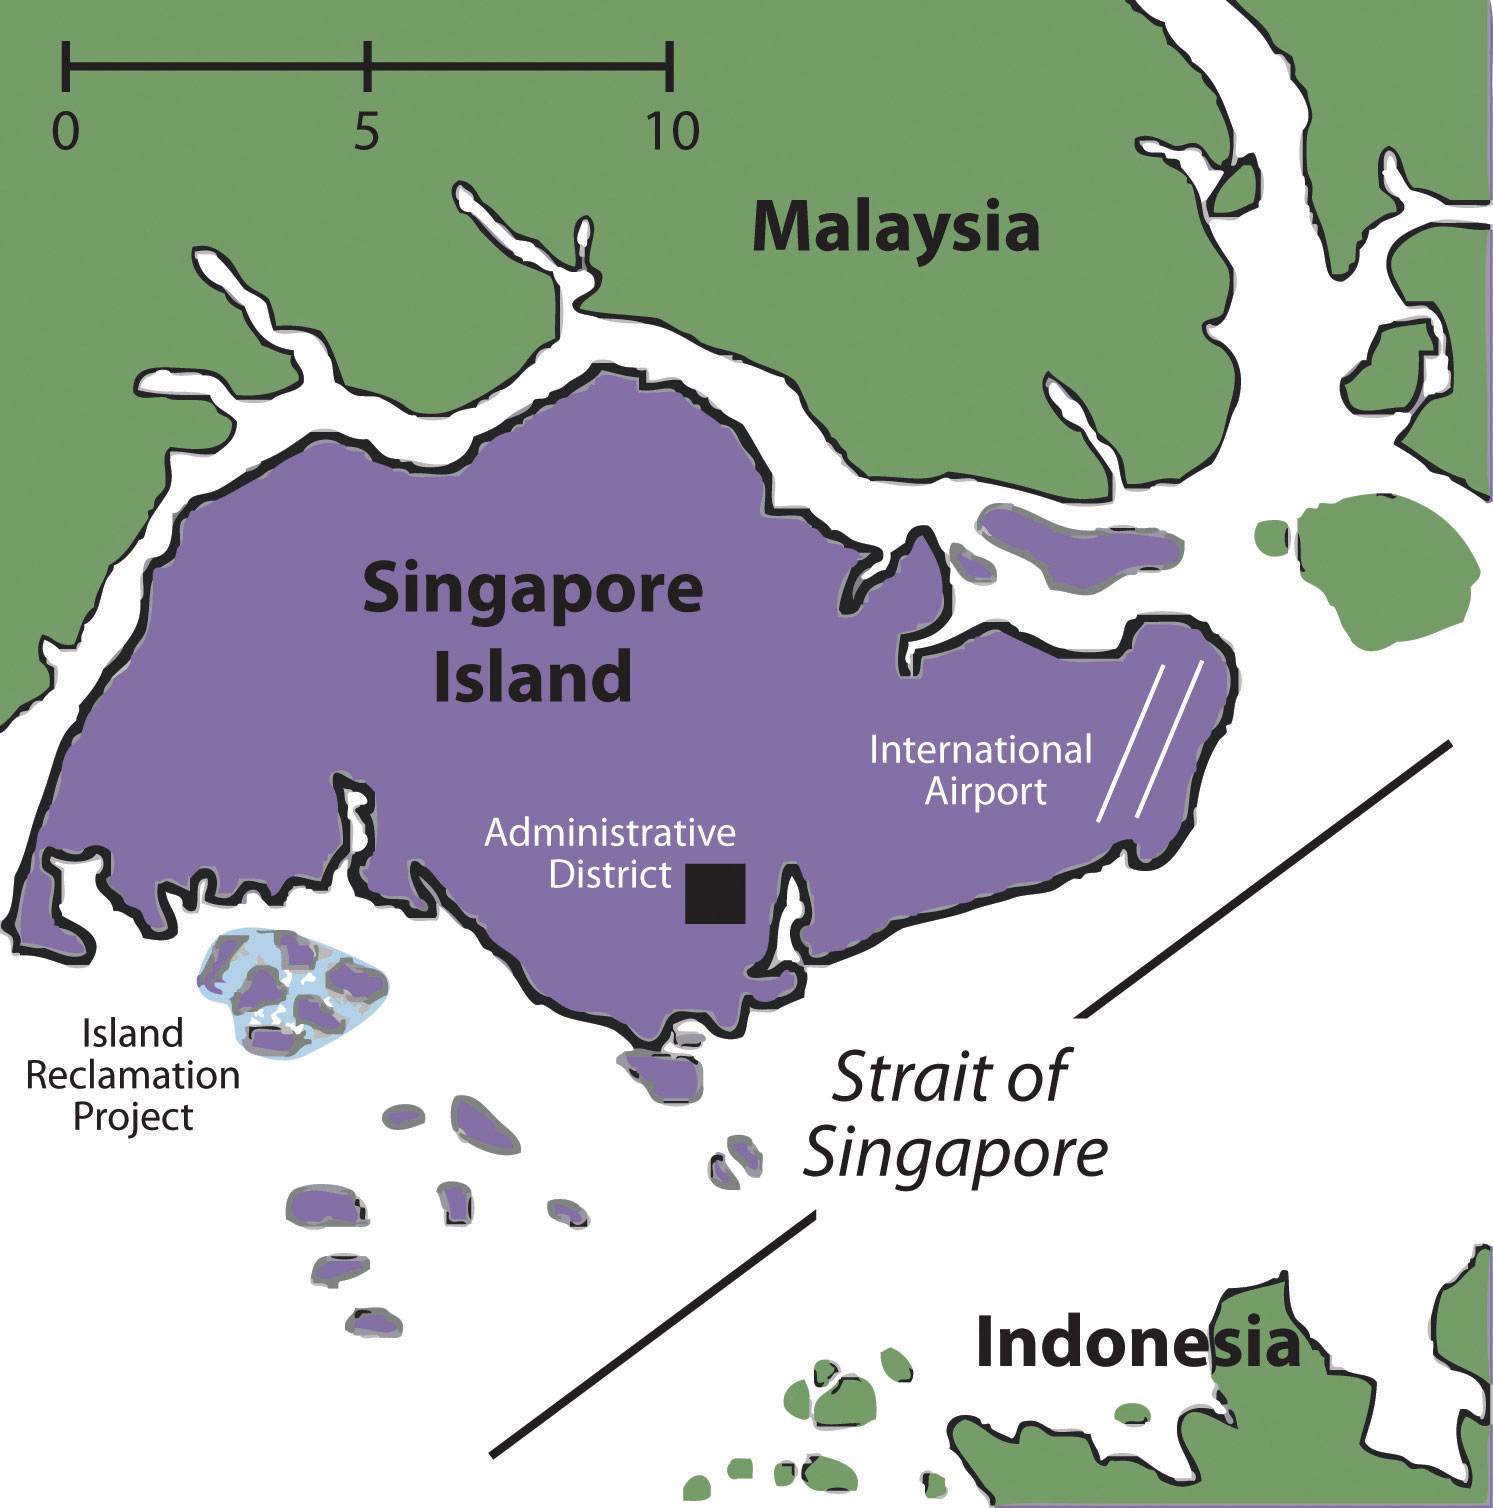 globalization in singapore This research is part of the globalization of e-commerce project of the center for research on information technology and organizations (crito) at the university of california, irvinethe research is supported by a grant from the us national science foundation (cise/iis/css.